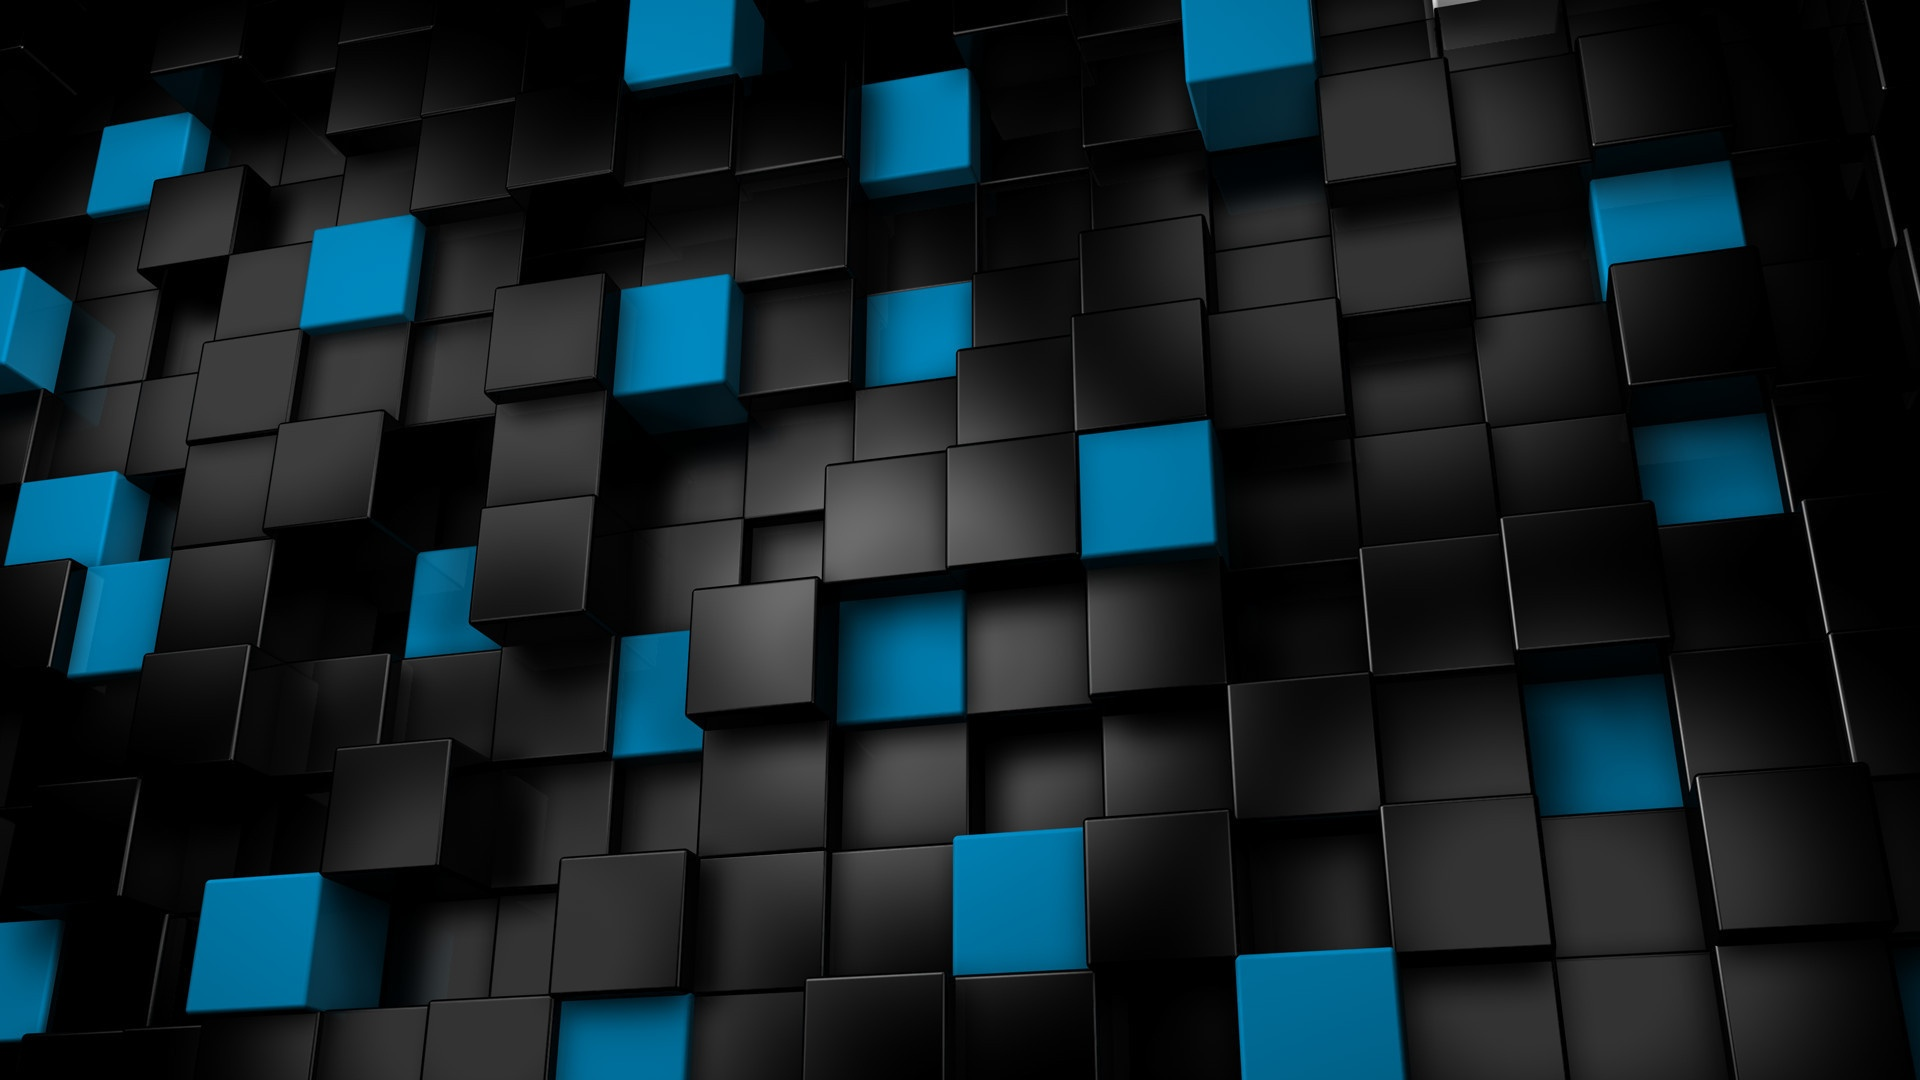 Blue and Black Cubic Backgrounds 198.9 Kb